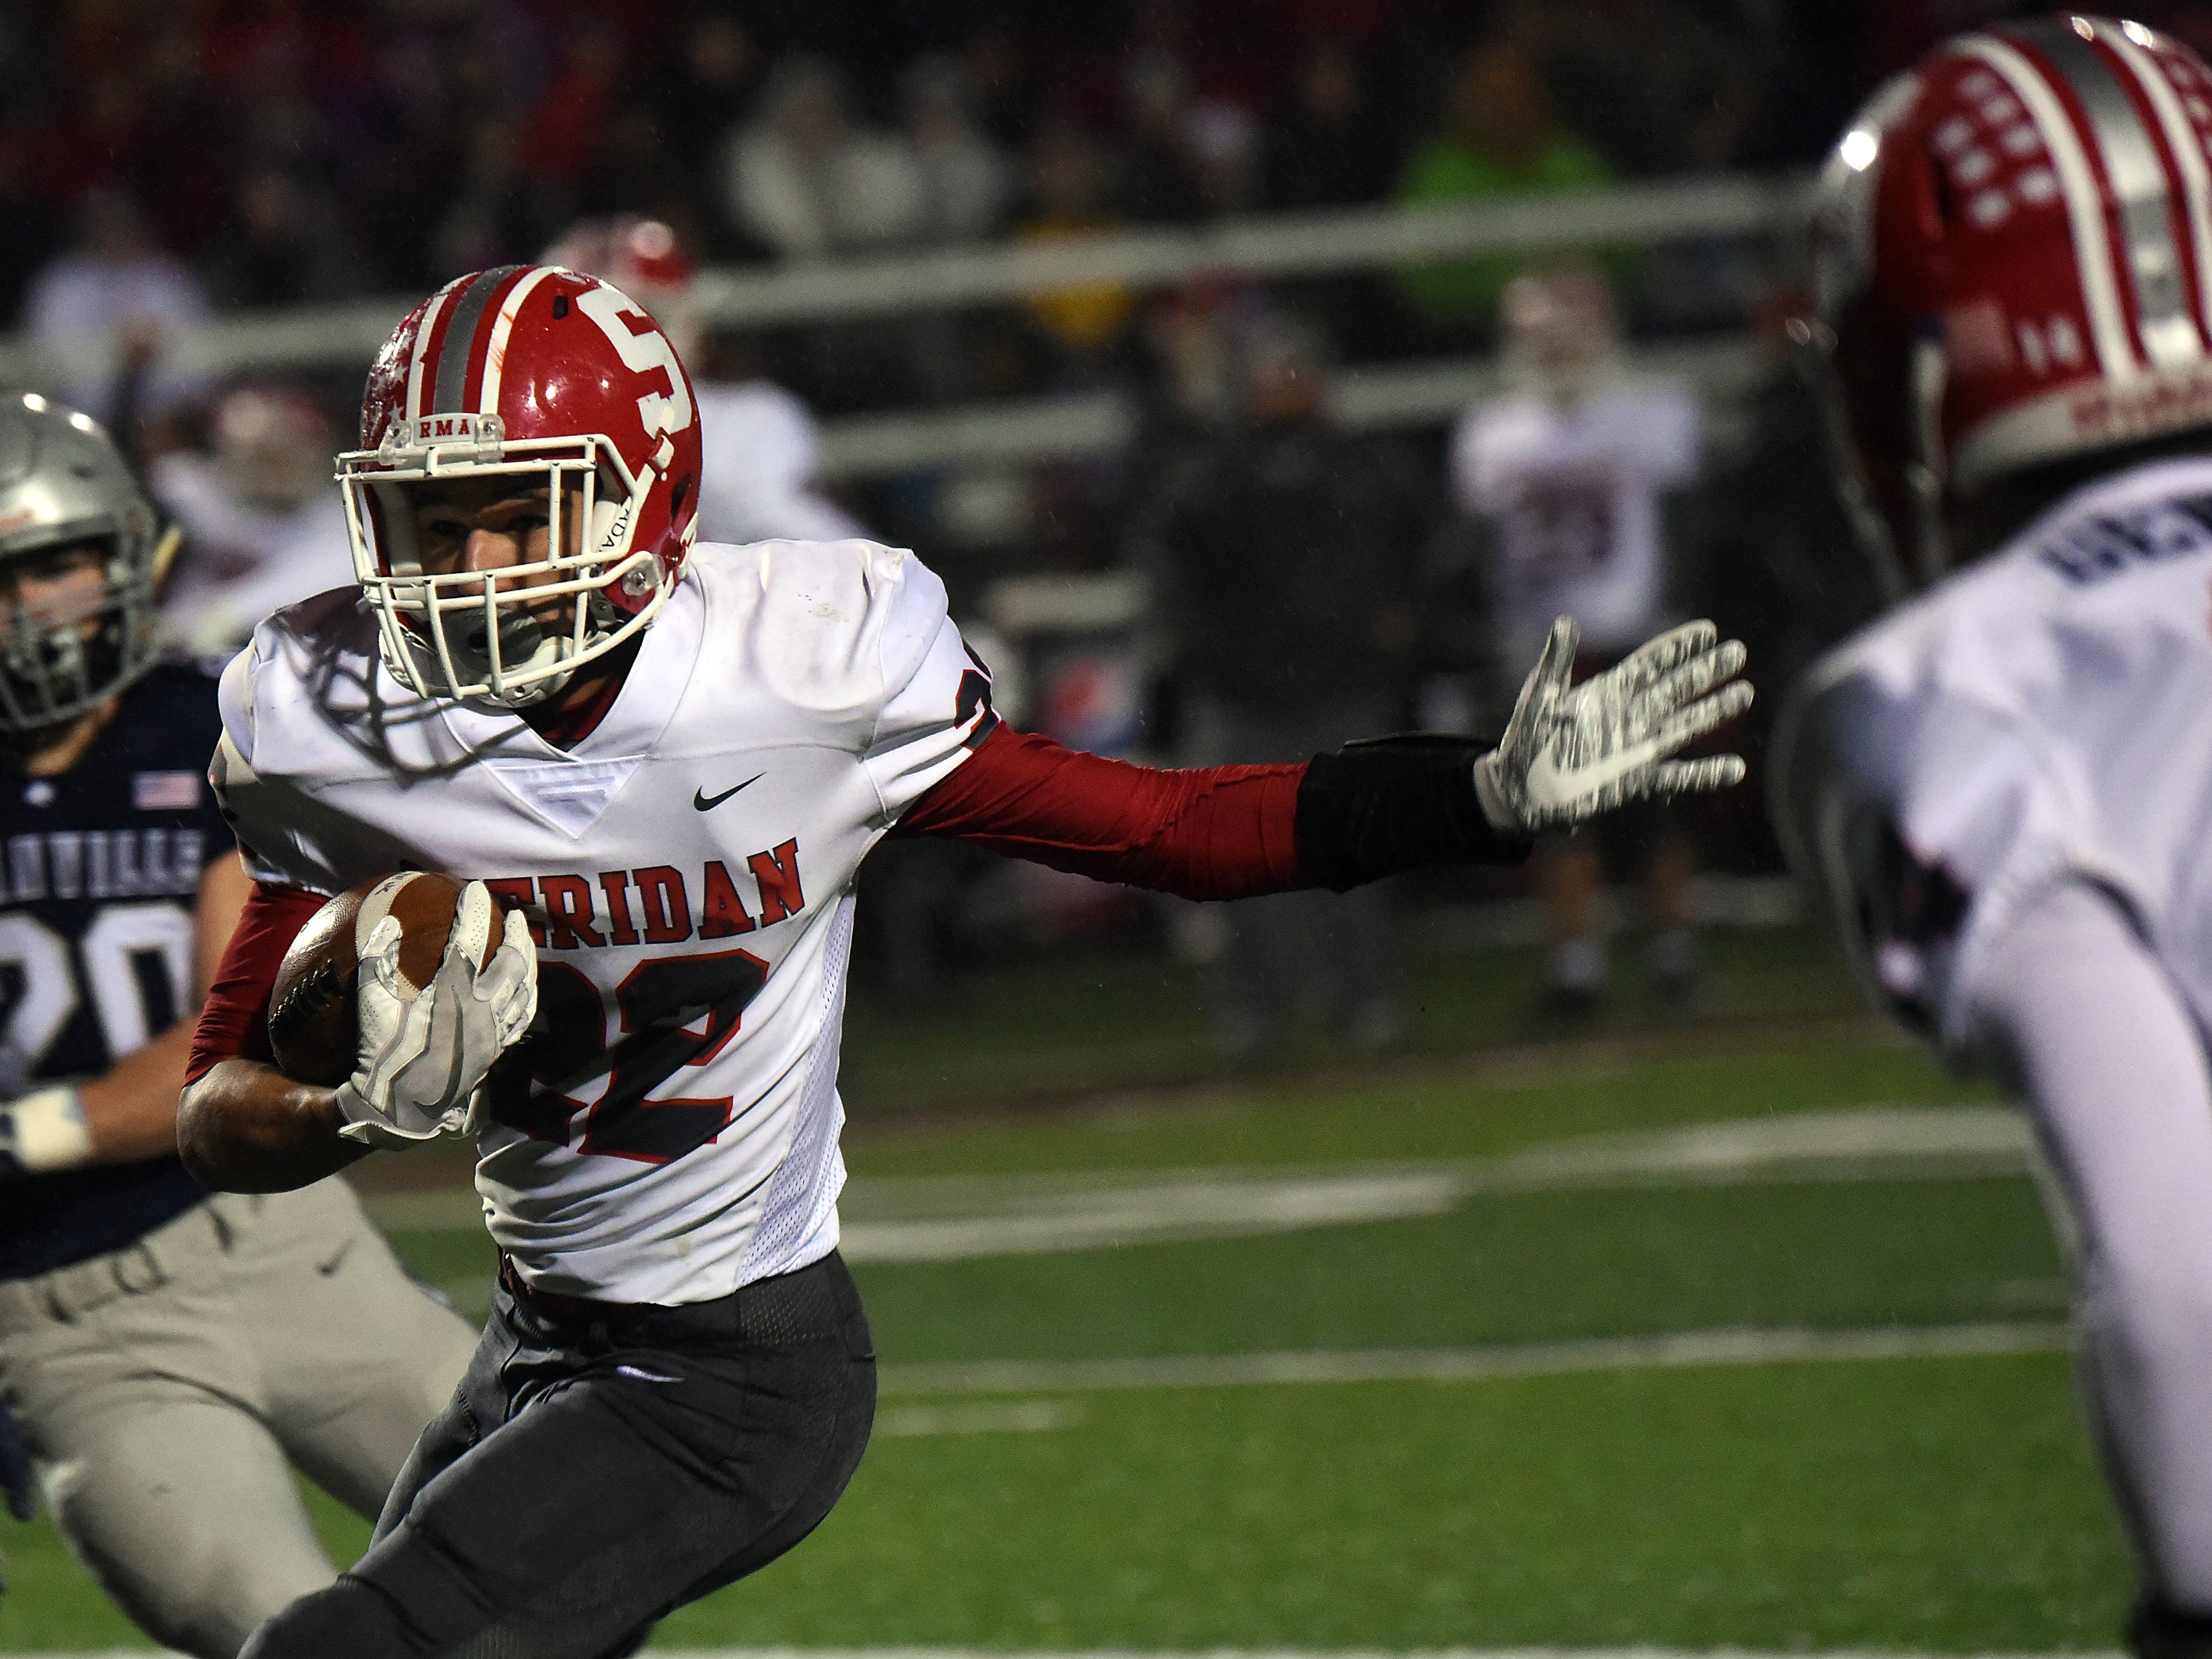 Sheridan senior running back Isaiah Austin carries the ball during Friday night's Division III, Region 11 semifinal. The Generals defeated the Blue Aces 20-7 on Friday, Nov. 9, 2018 at White Field in Newark.